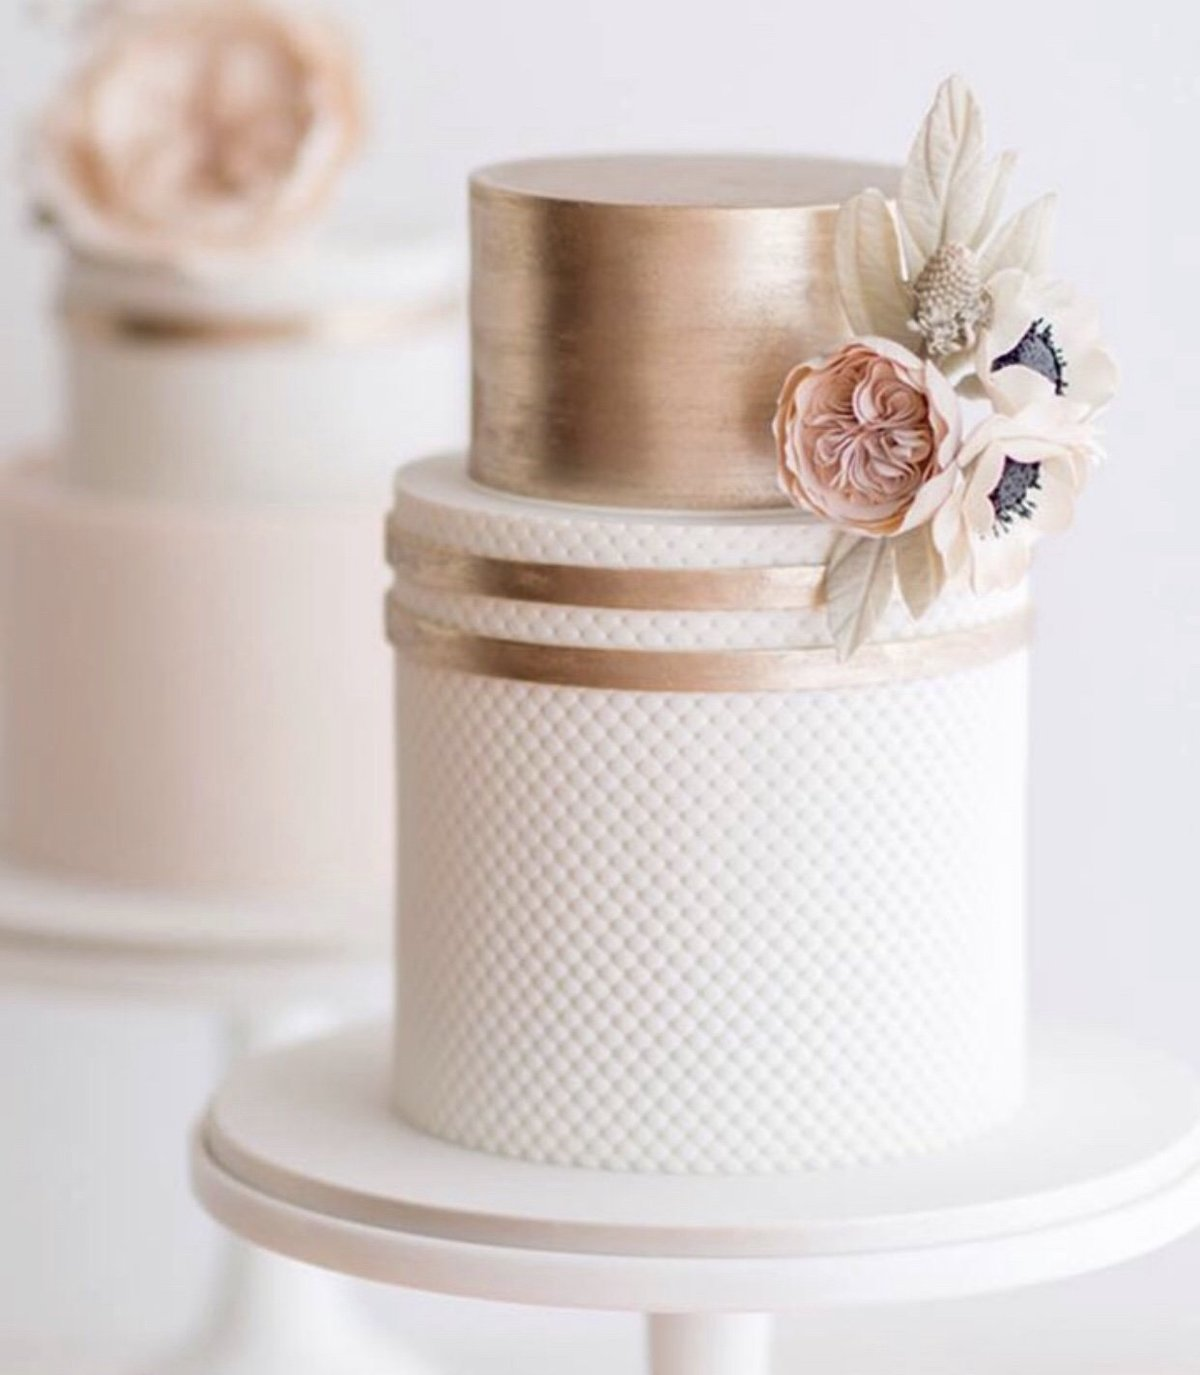 rose-gold-wedding-cake-joli-events-home